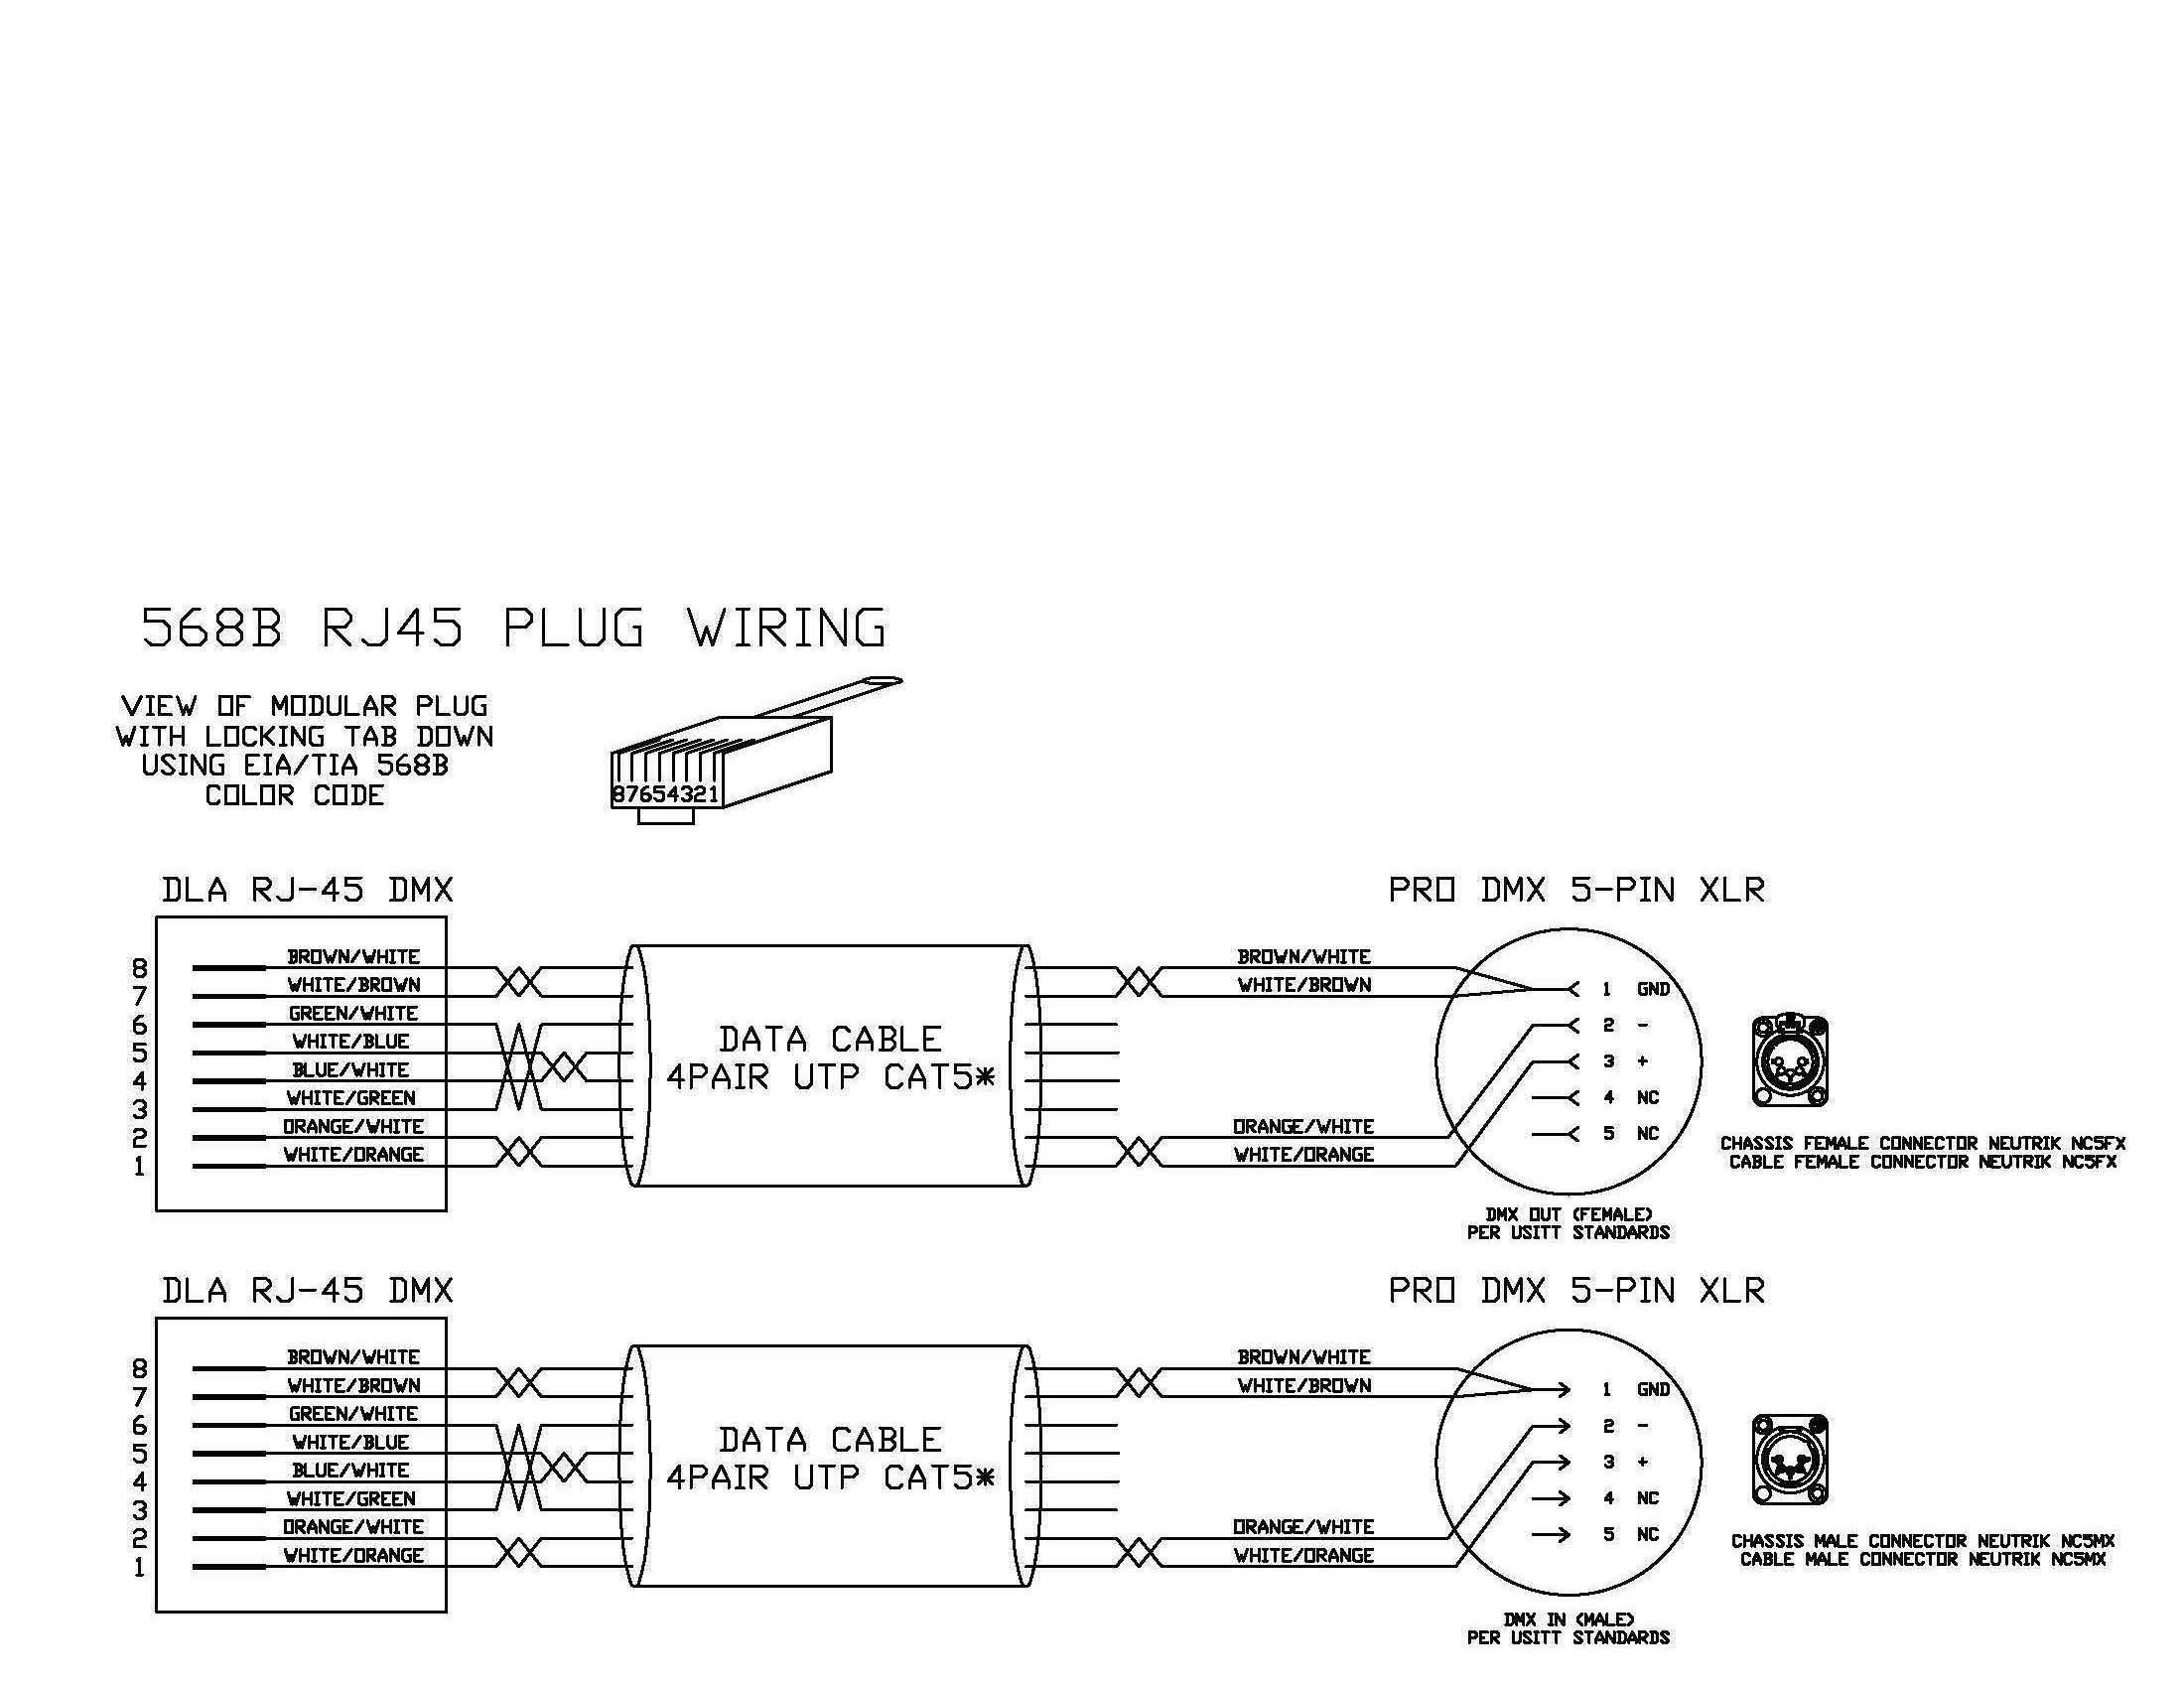 e975ddb6a839e630c21b81db05ca4fa6 xlr to rj45 wiring diagram xlr electrical wiring diagrams Electrical Wire Color Codes at bakdesigns.co